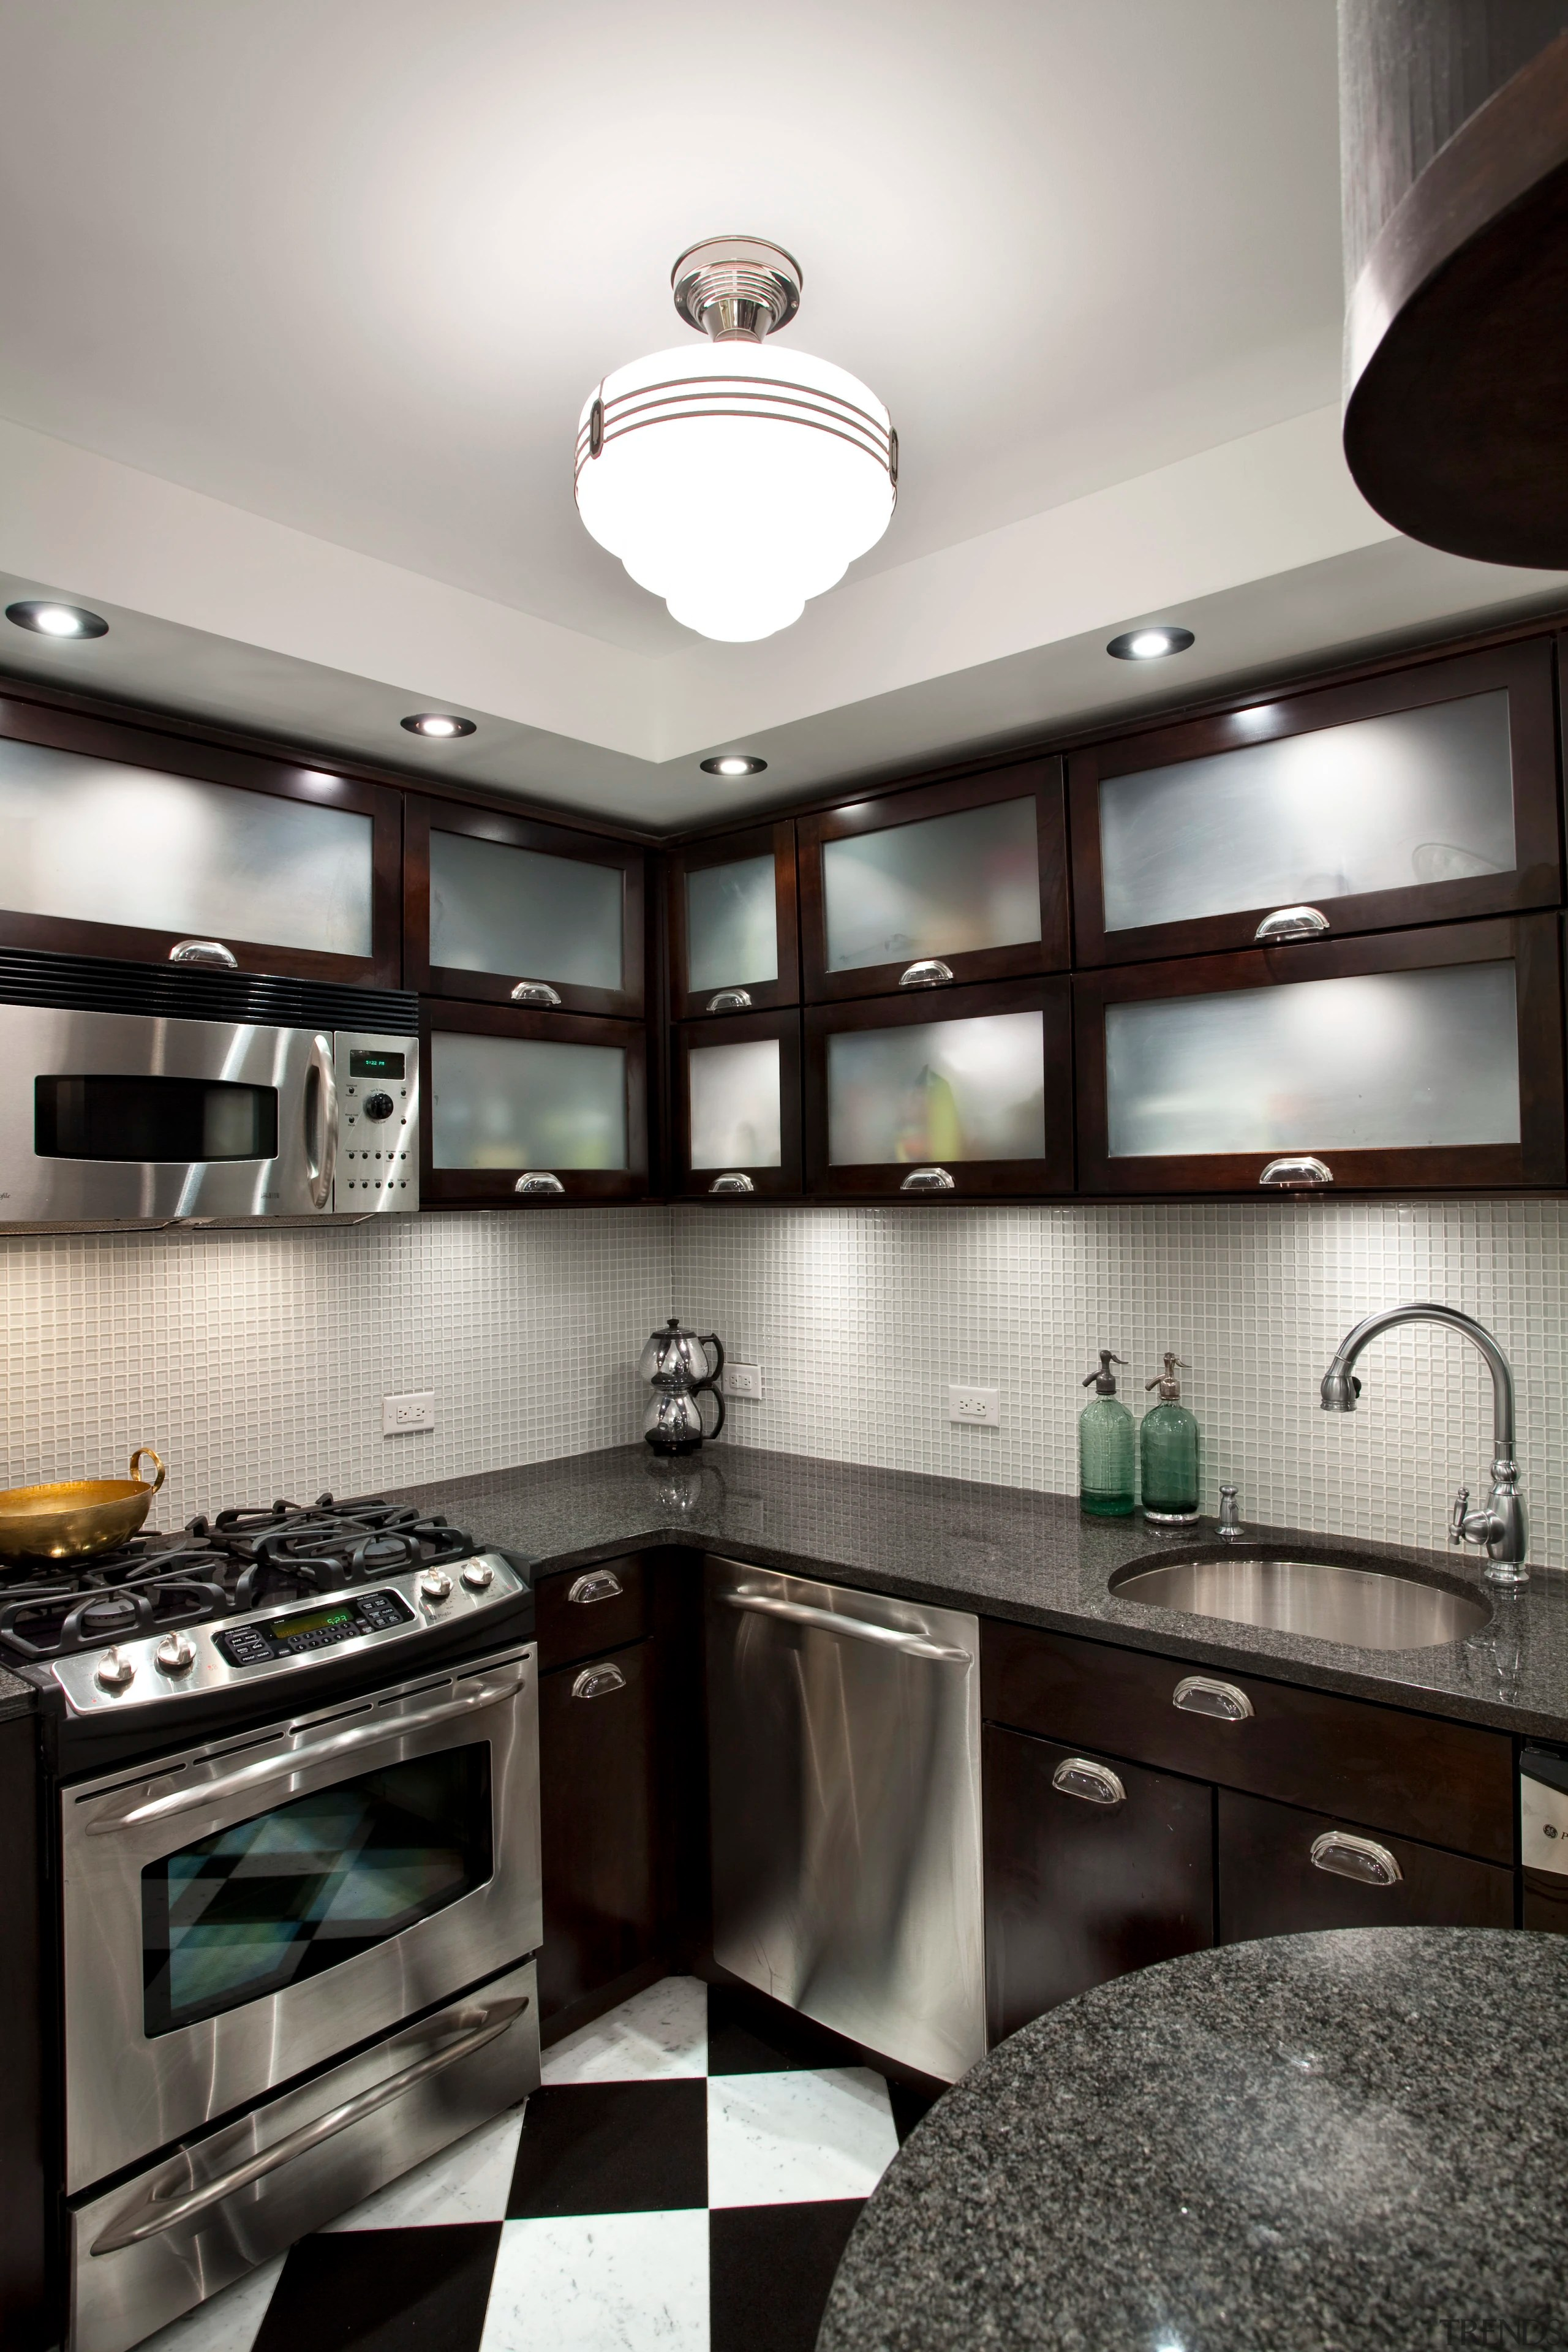 Art Deco Design Cuisine View Of Kitchen In Art Deco Styled Gallery 4 Trends